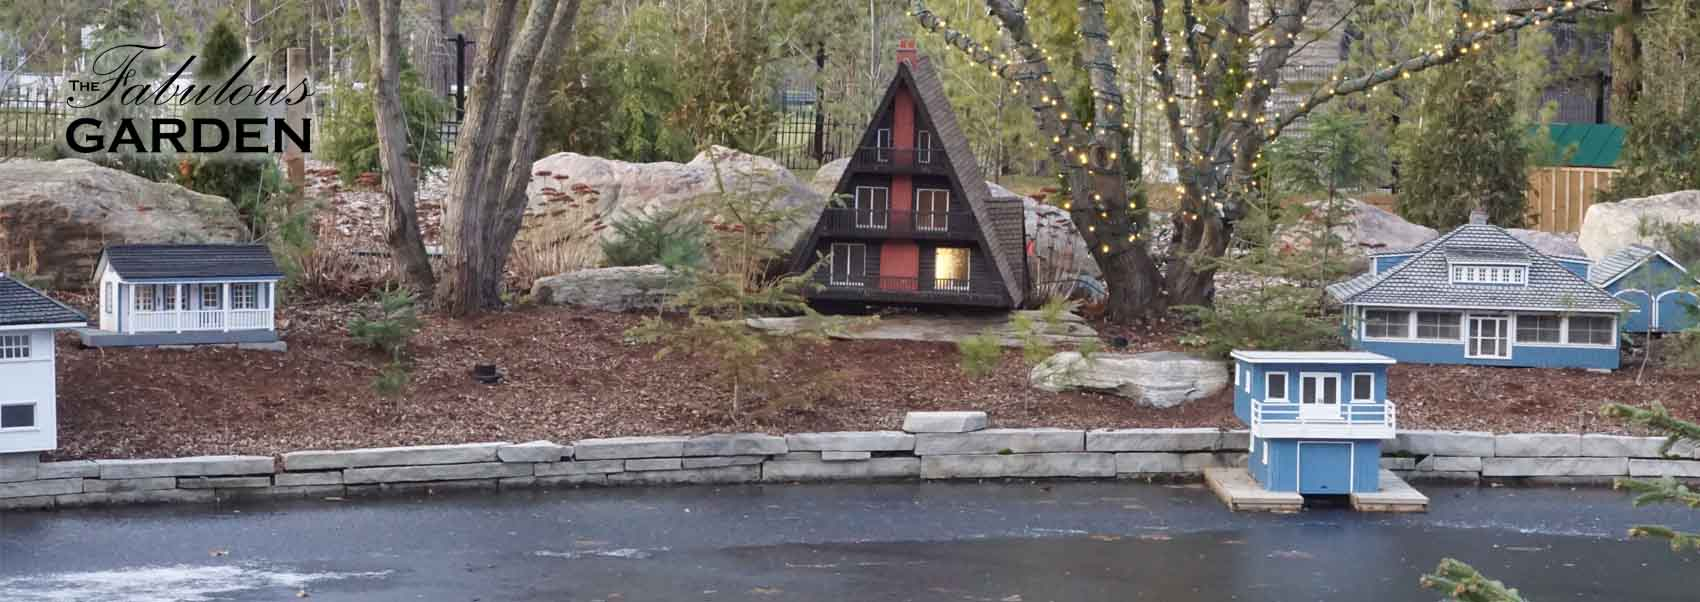 Visit to a miniature village in Niagara